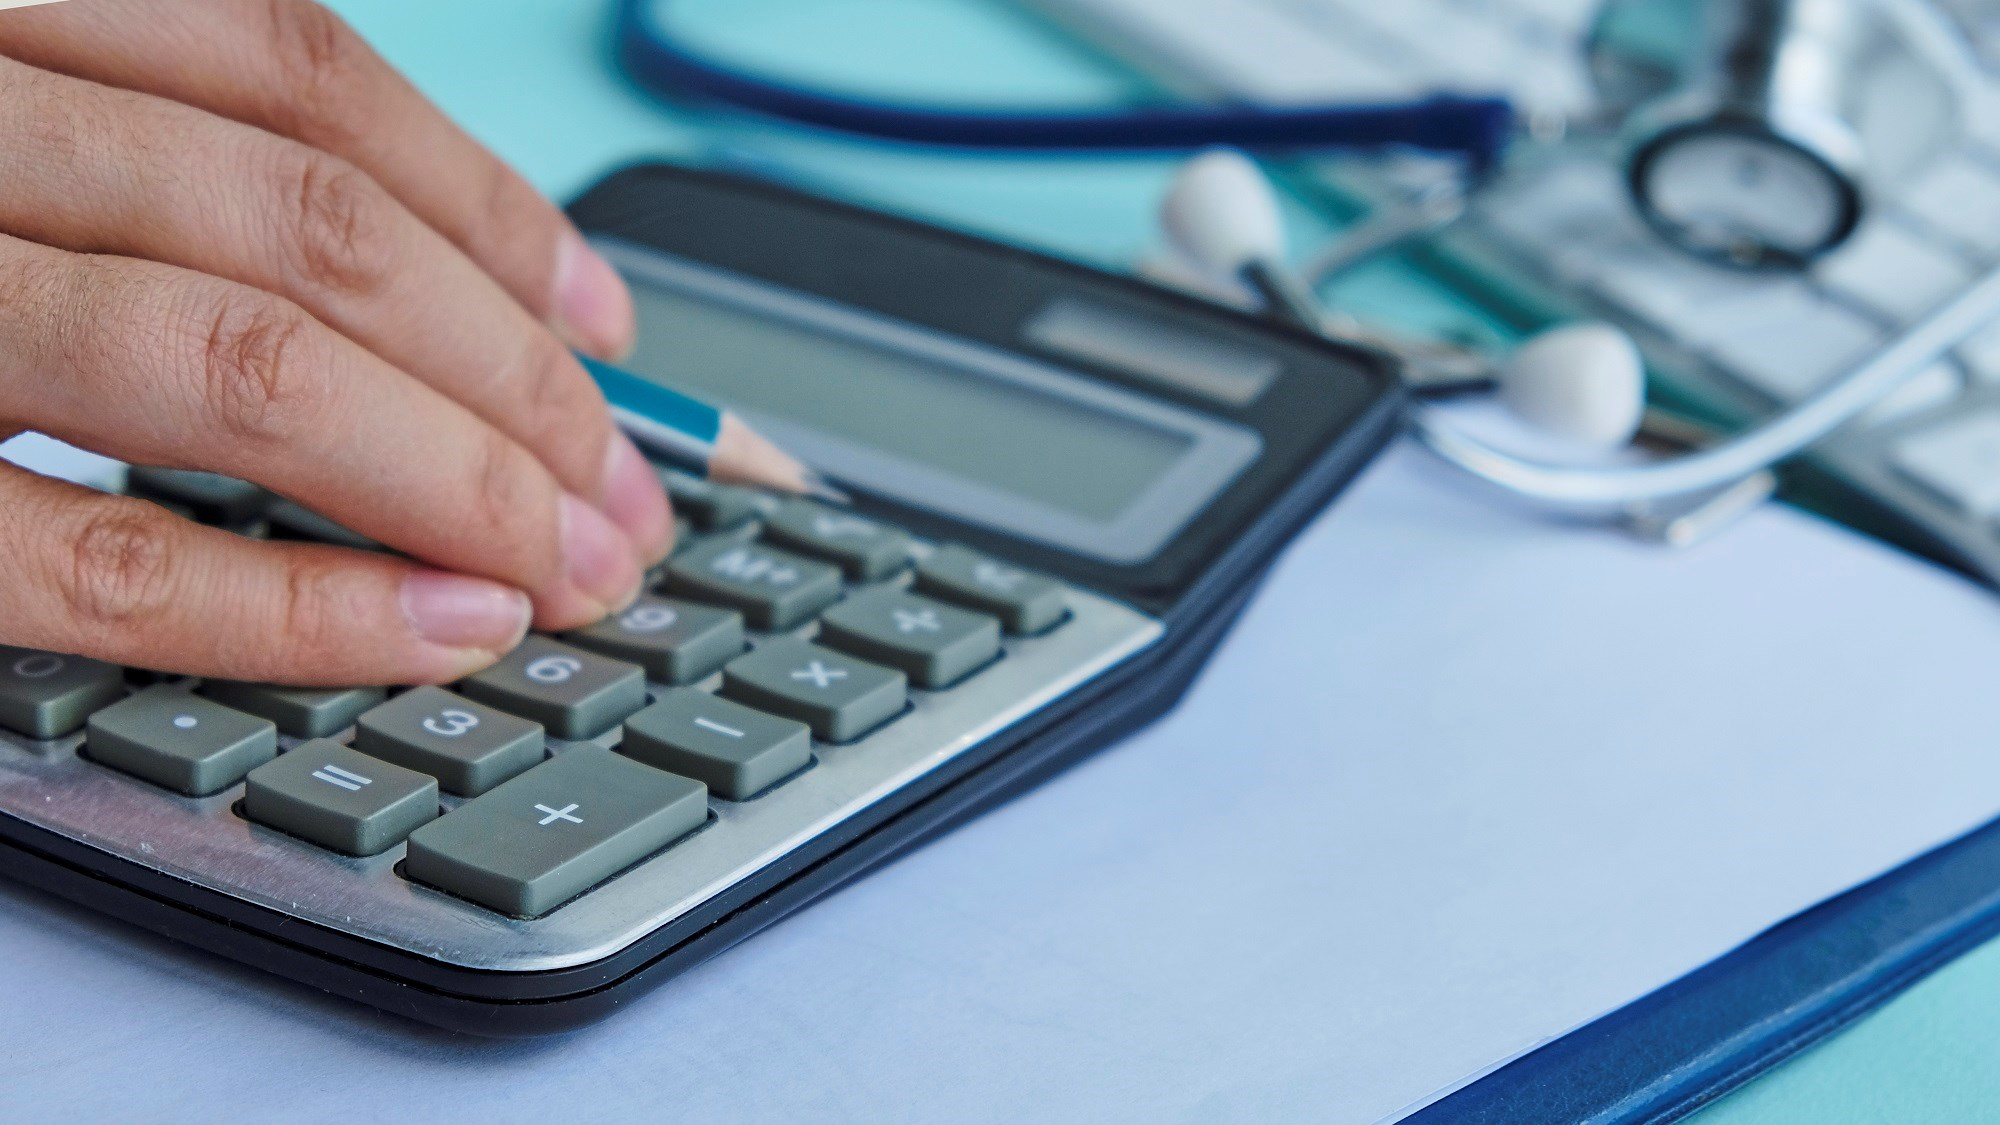 By understanding 3 indices and metrics, physicians can change the financial outcome of their medical practice.